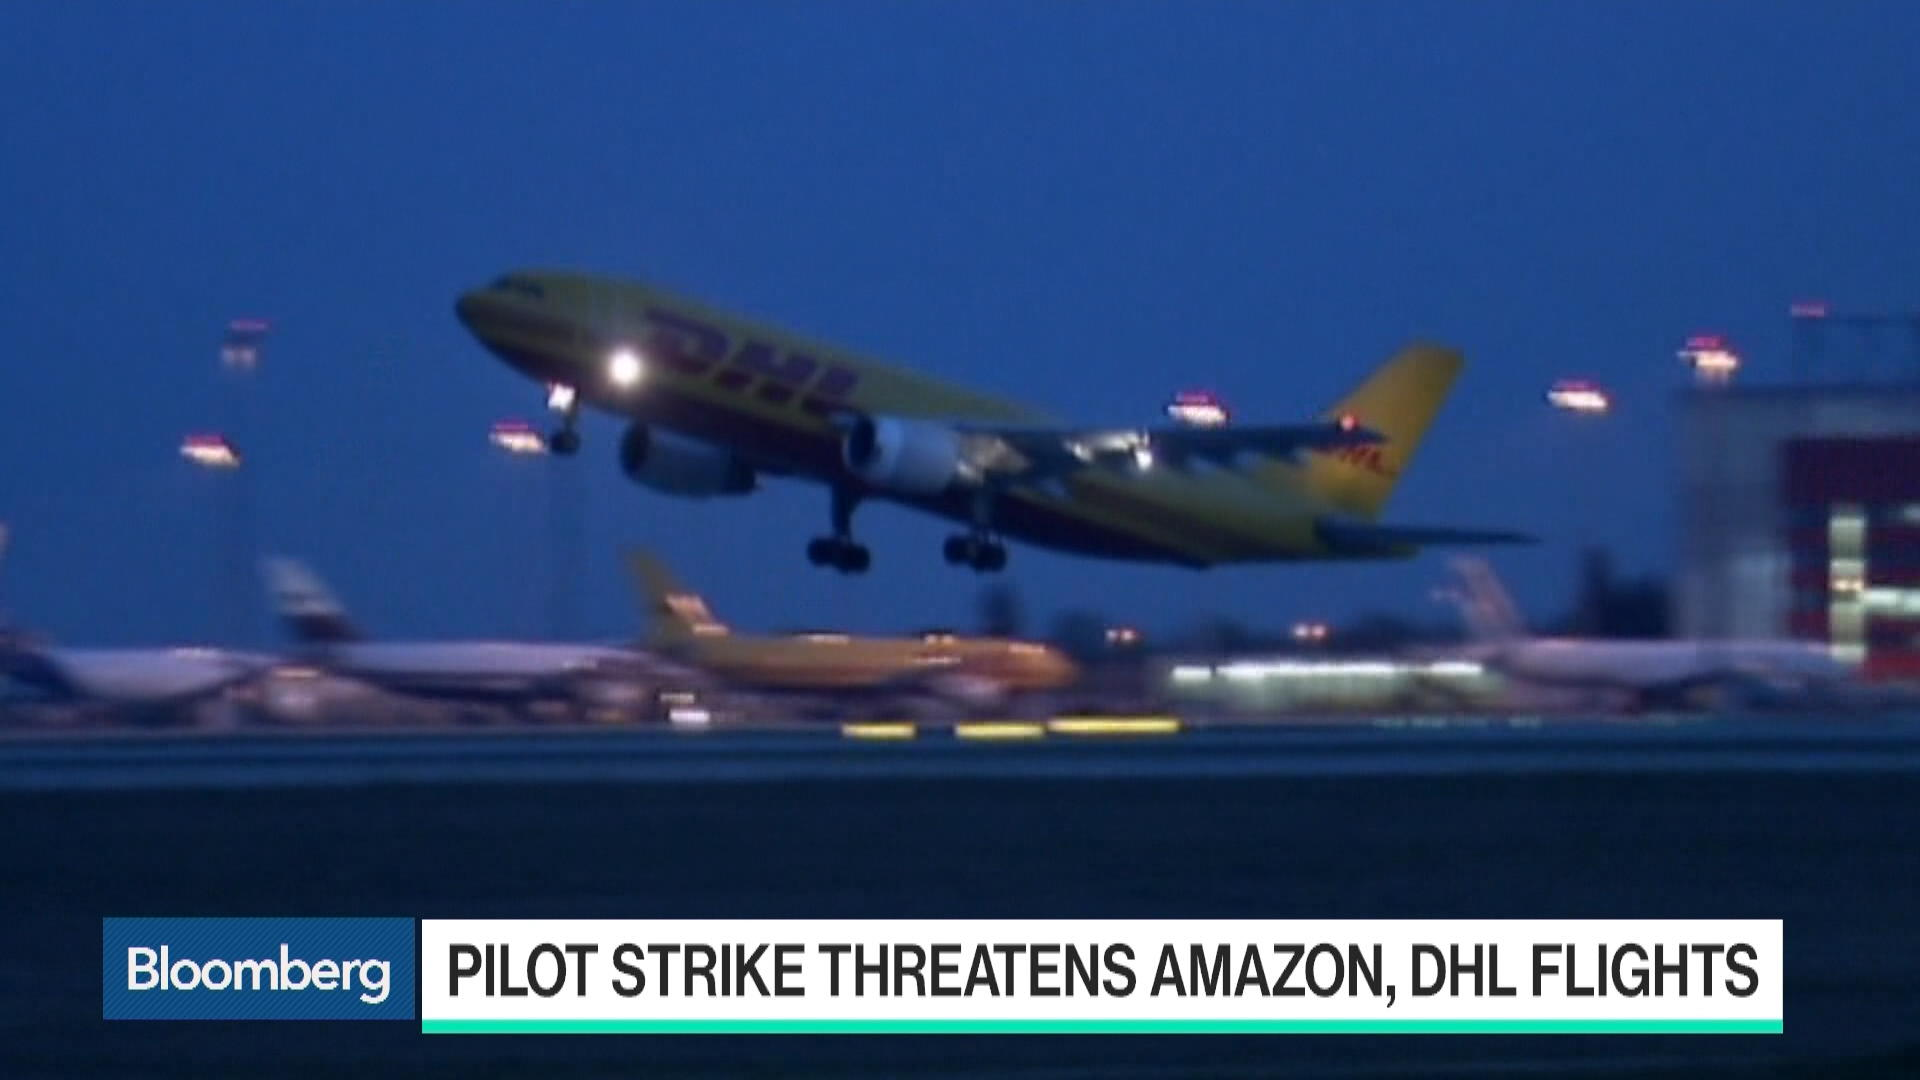 Amazon Air Contractor Aims to Force Striking Pilots to Work